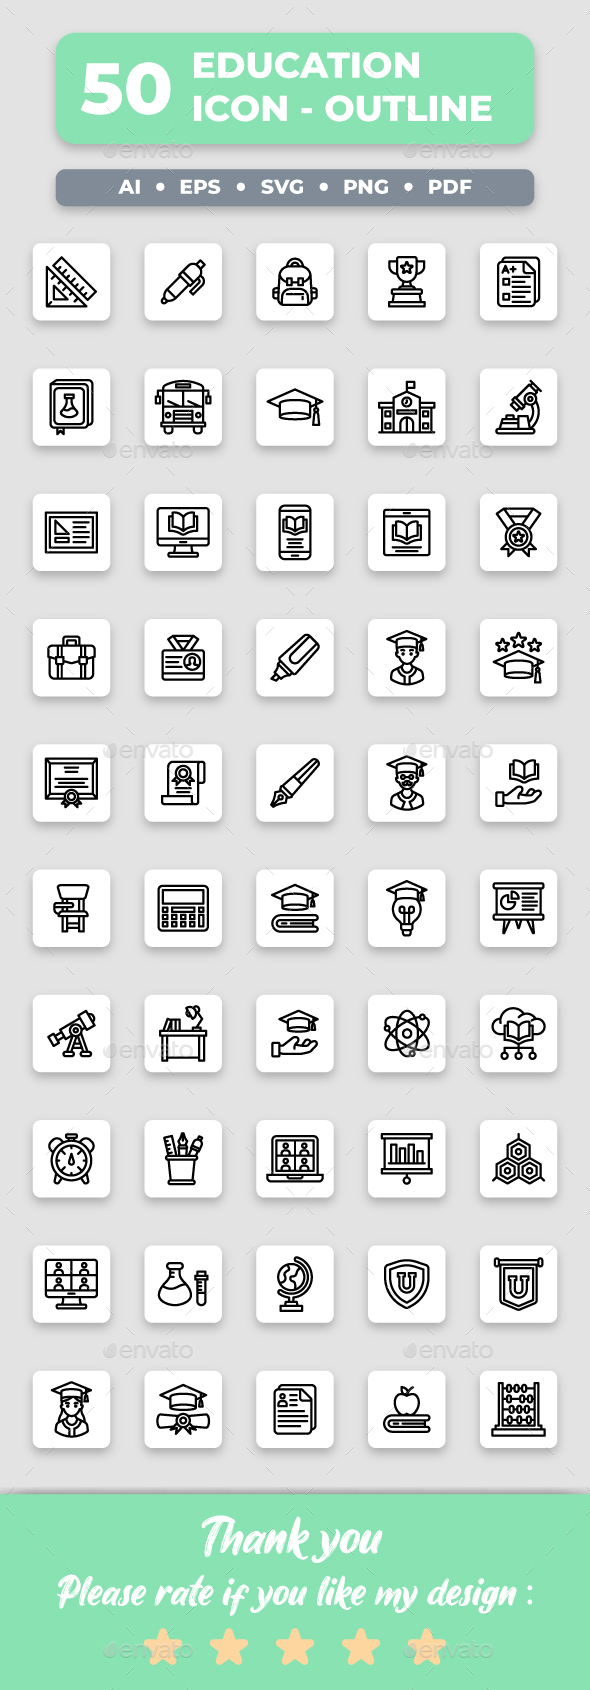 Education - Outline Collection Icon Set